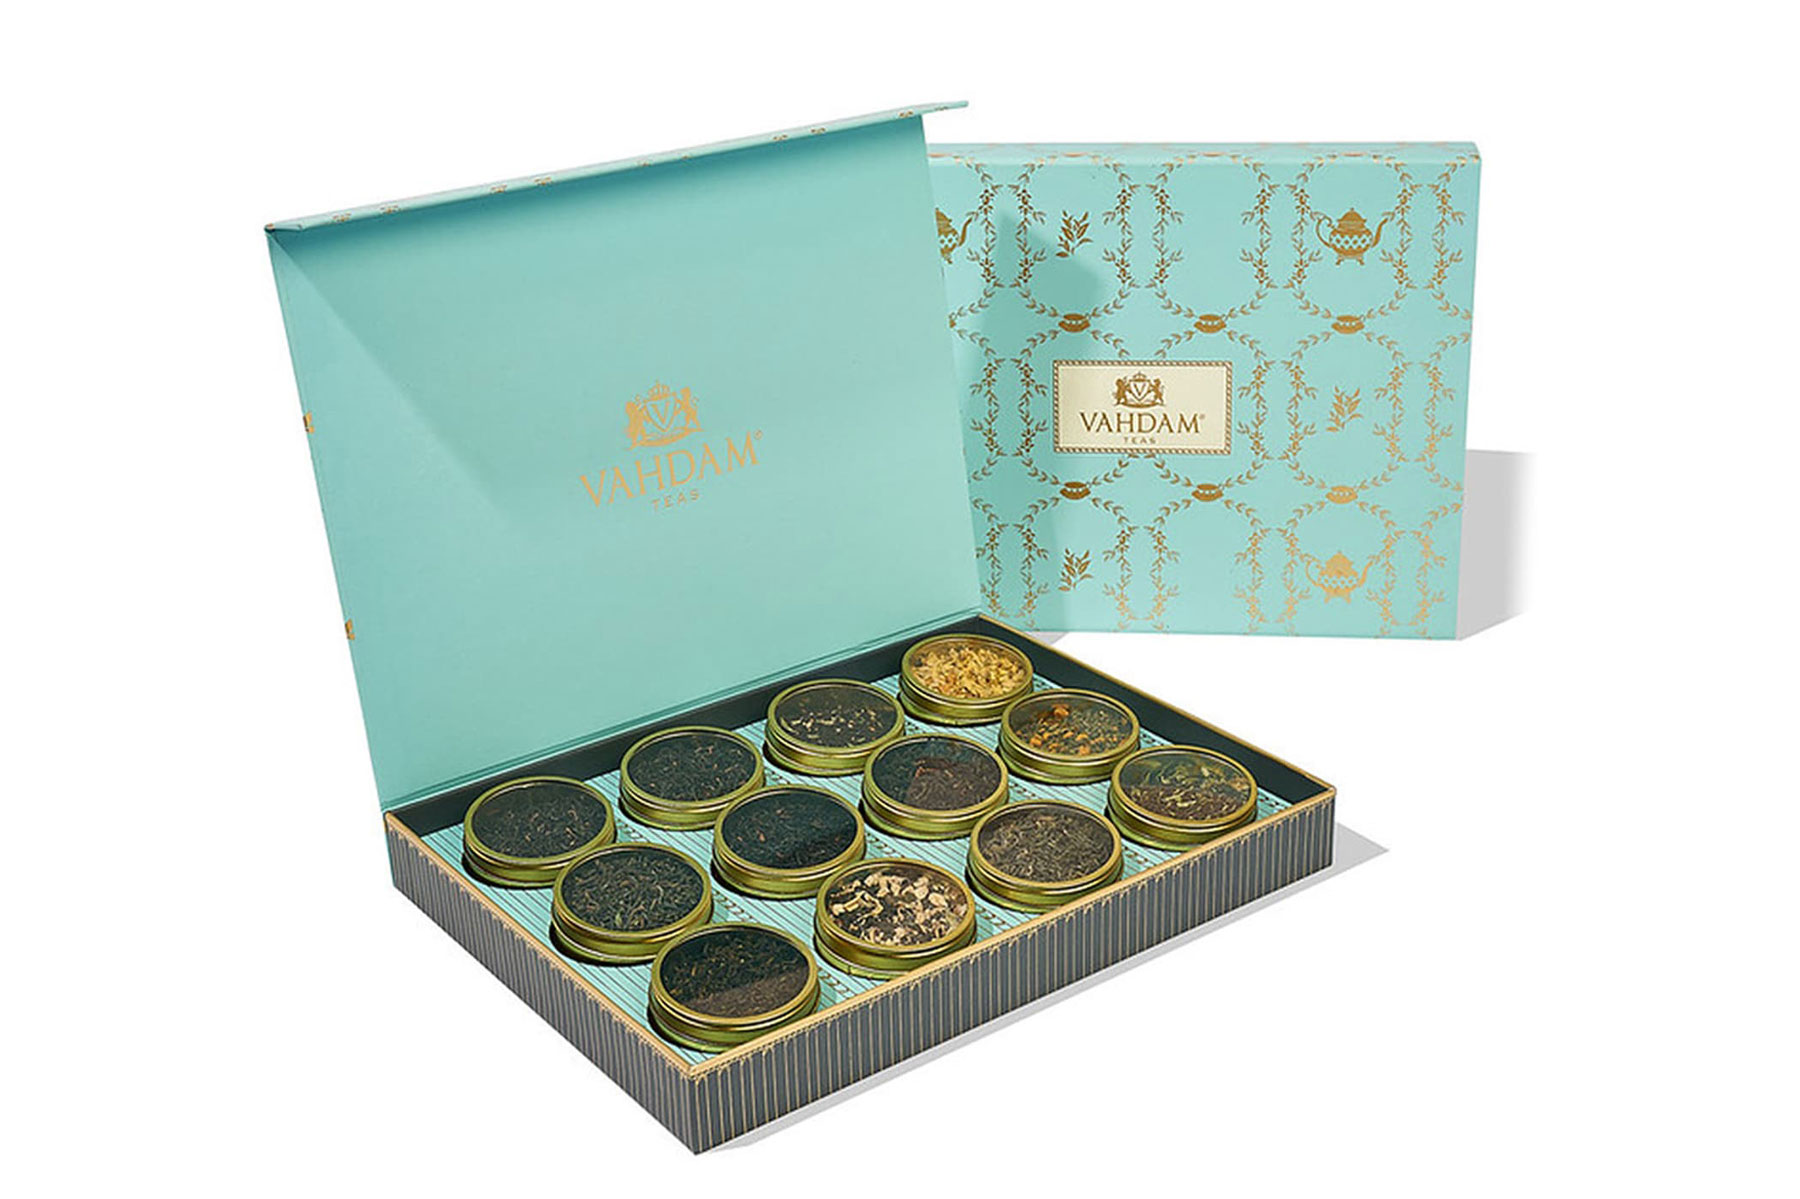 Gift set of loose leaf teas